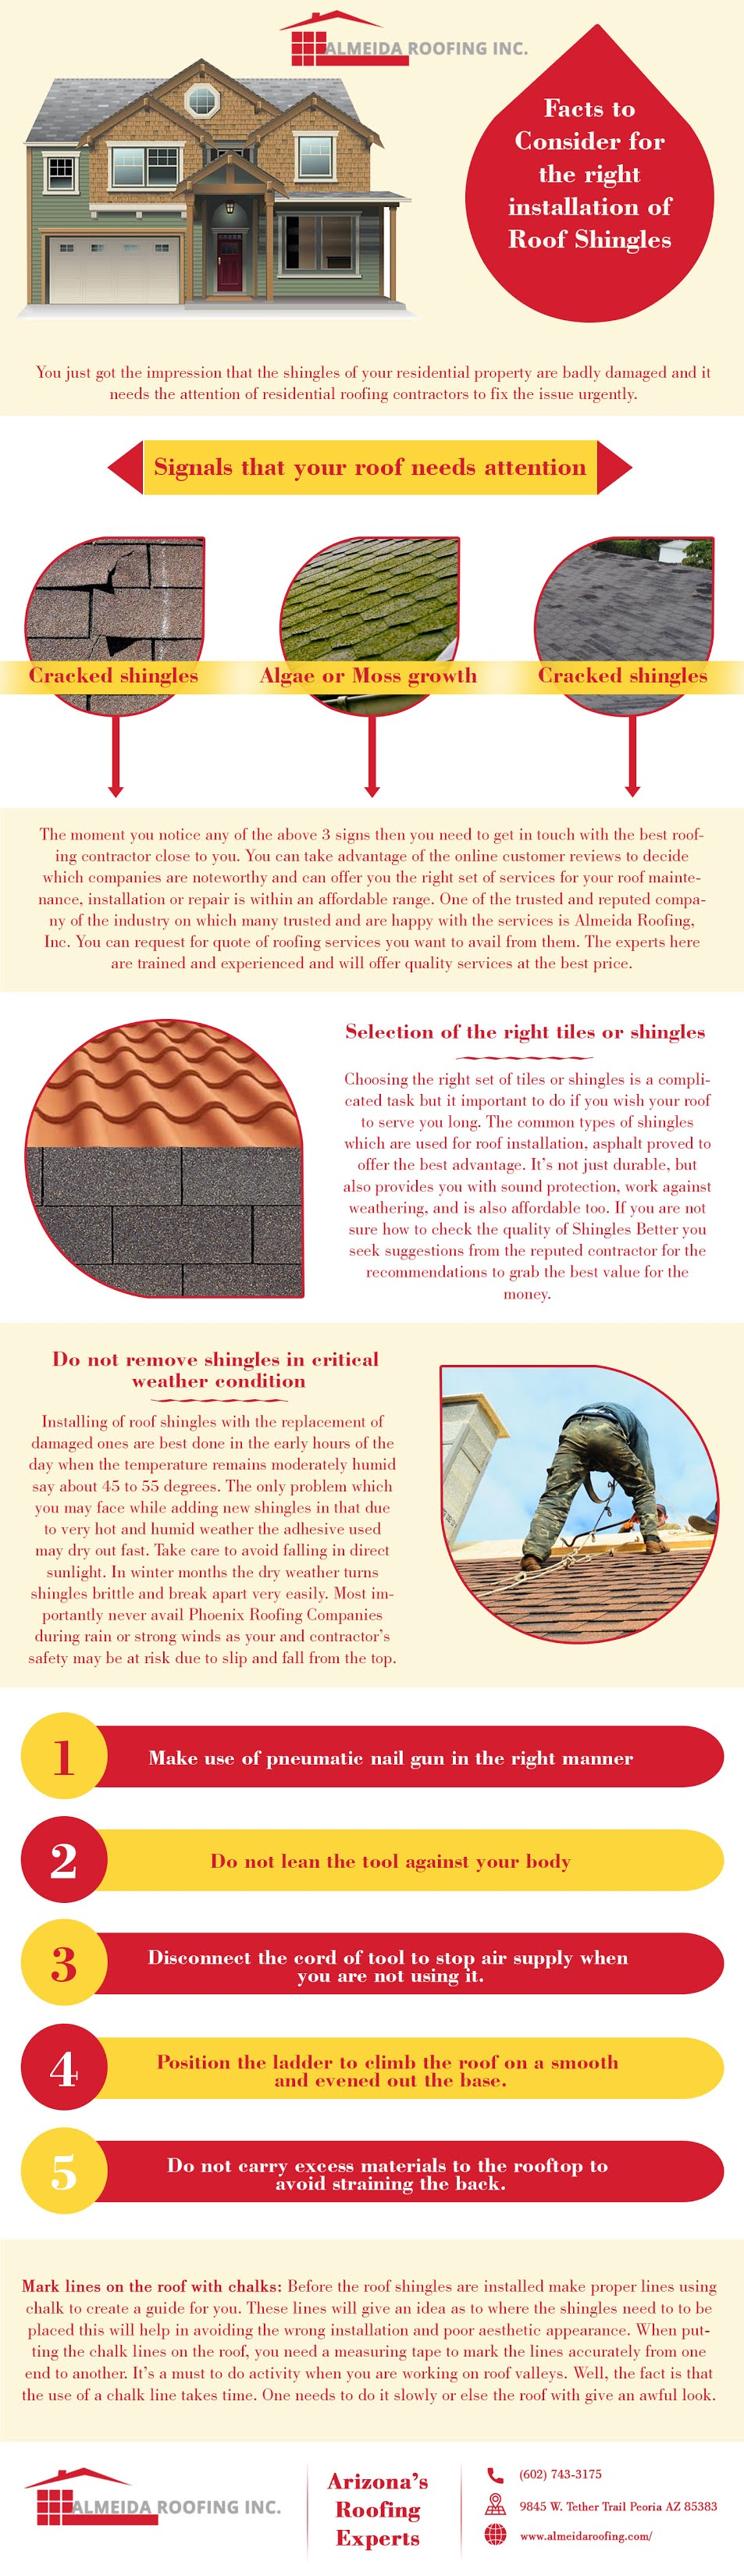 Facts To Consider For The Right Installation Of Roof Shingles #infographic #Home Improvement #infographic #Installation Of Roof Shingles